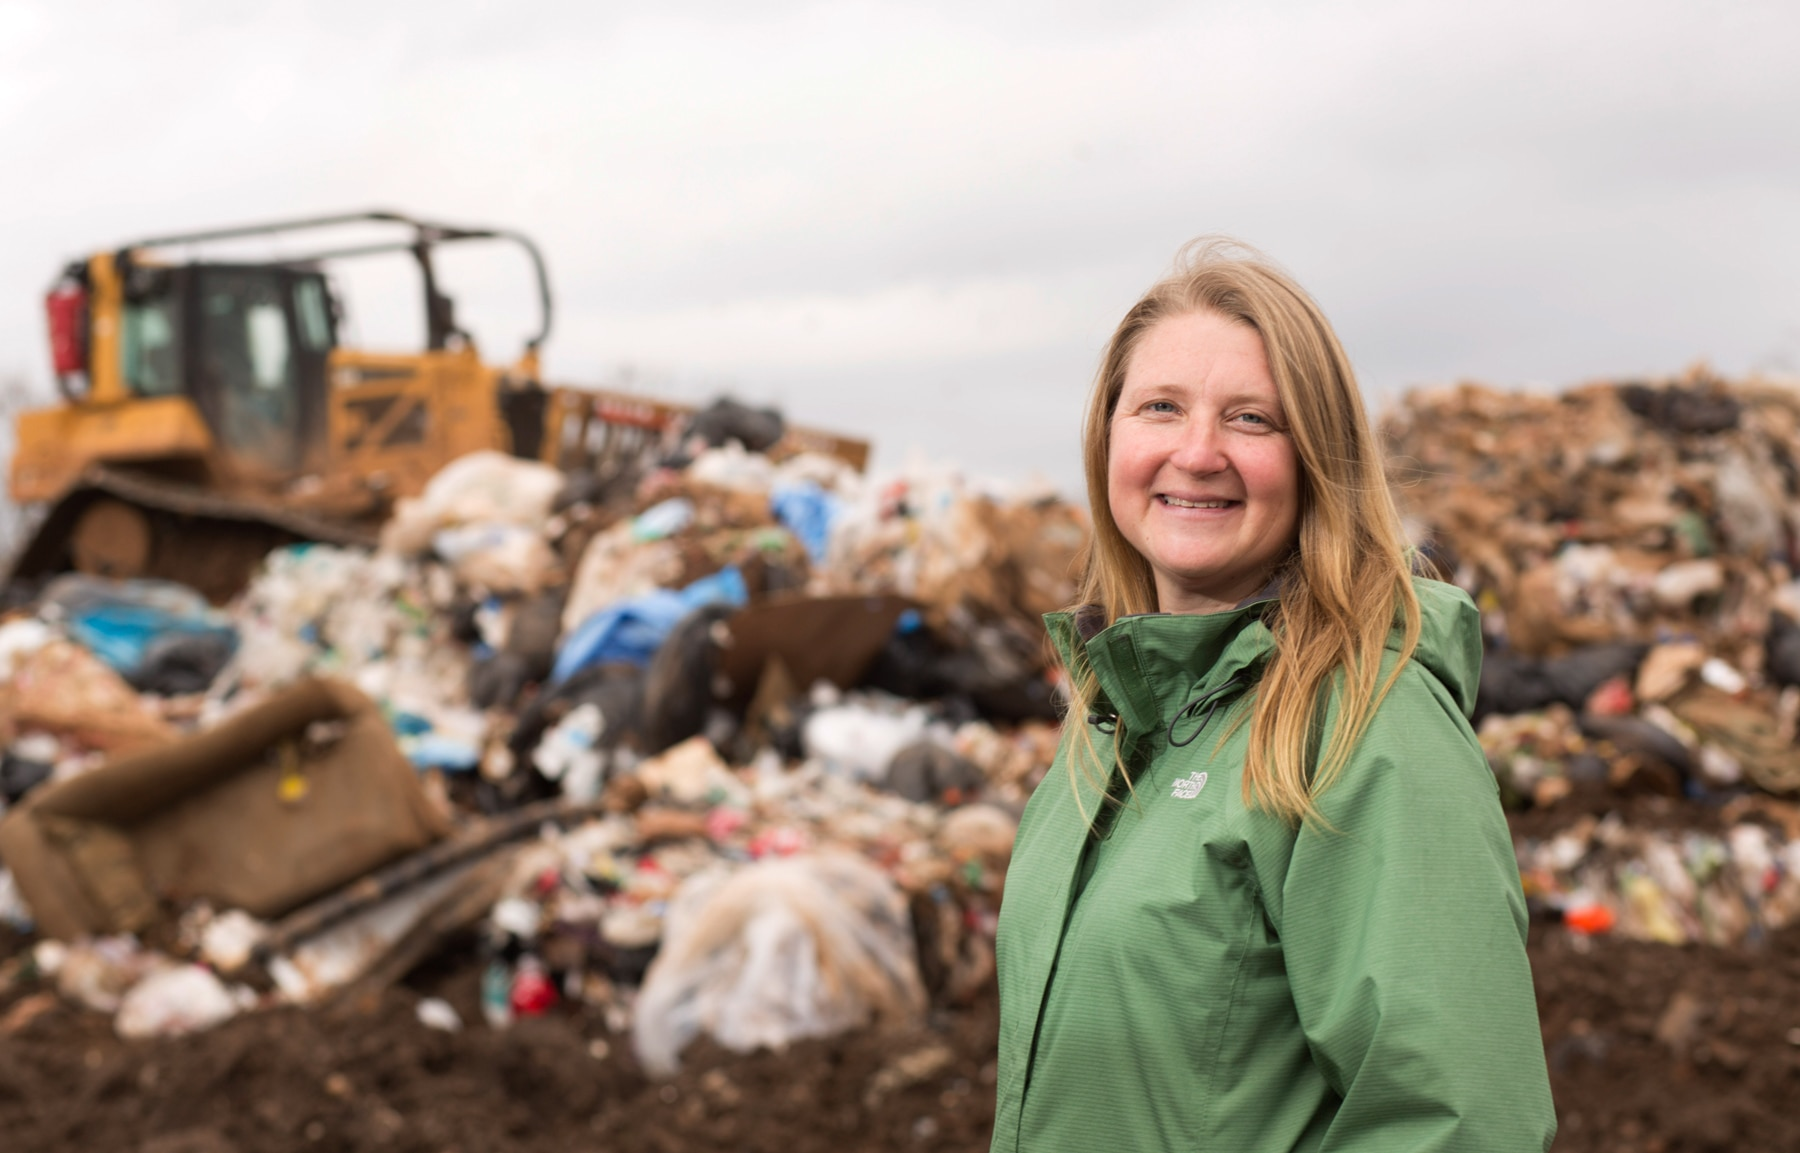 Jenna Jambeck smiling, with garbage mound and bulldozer in background (Courtesy of Jenna Jambeck)